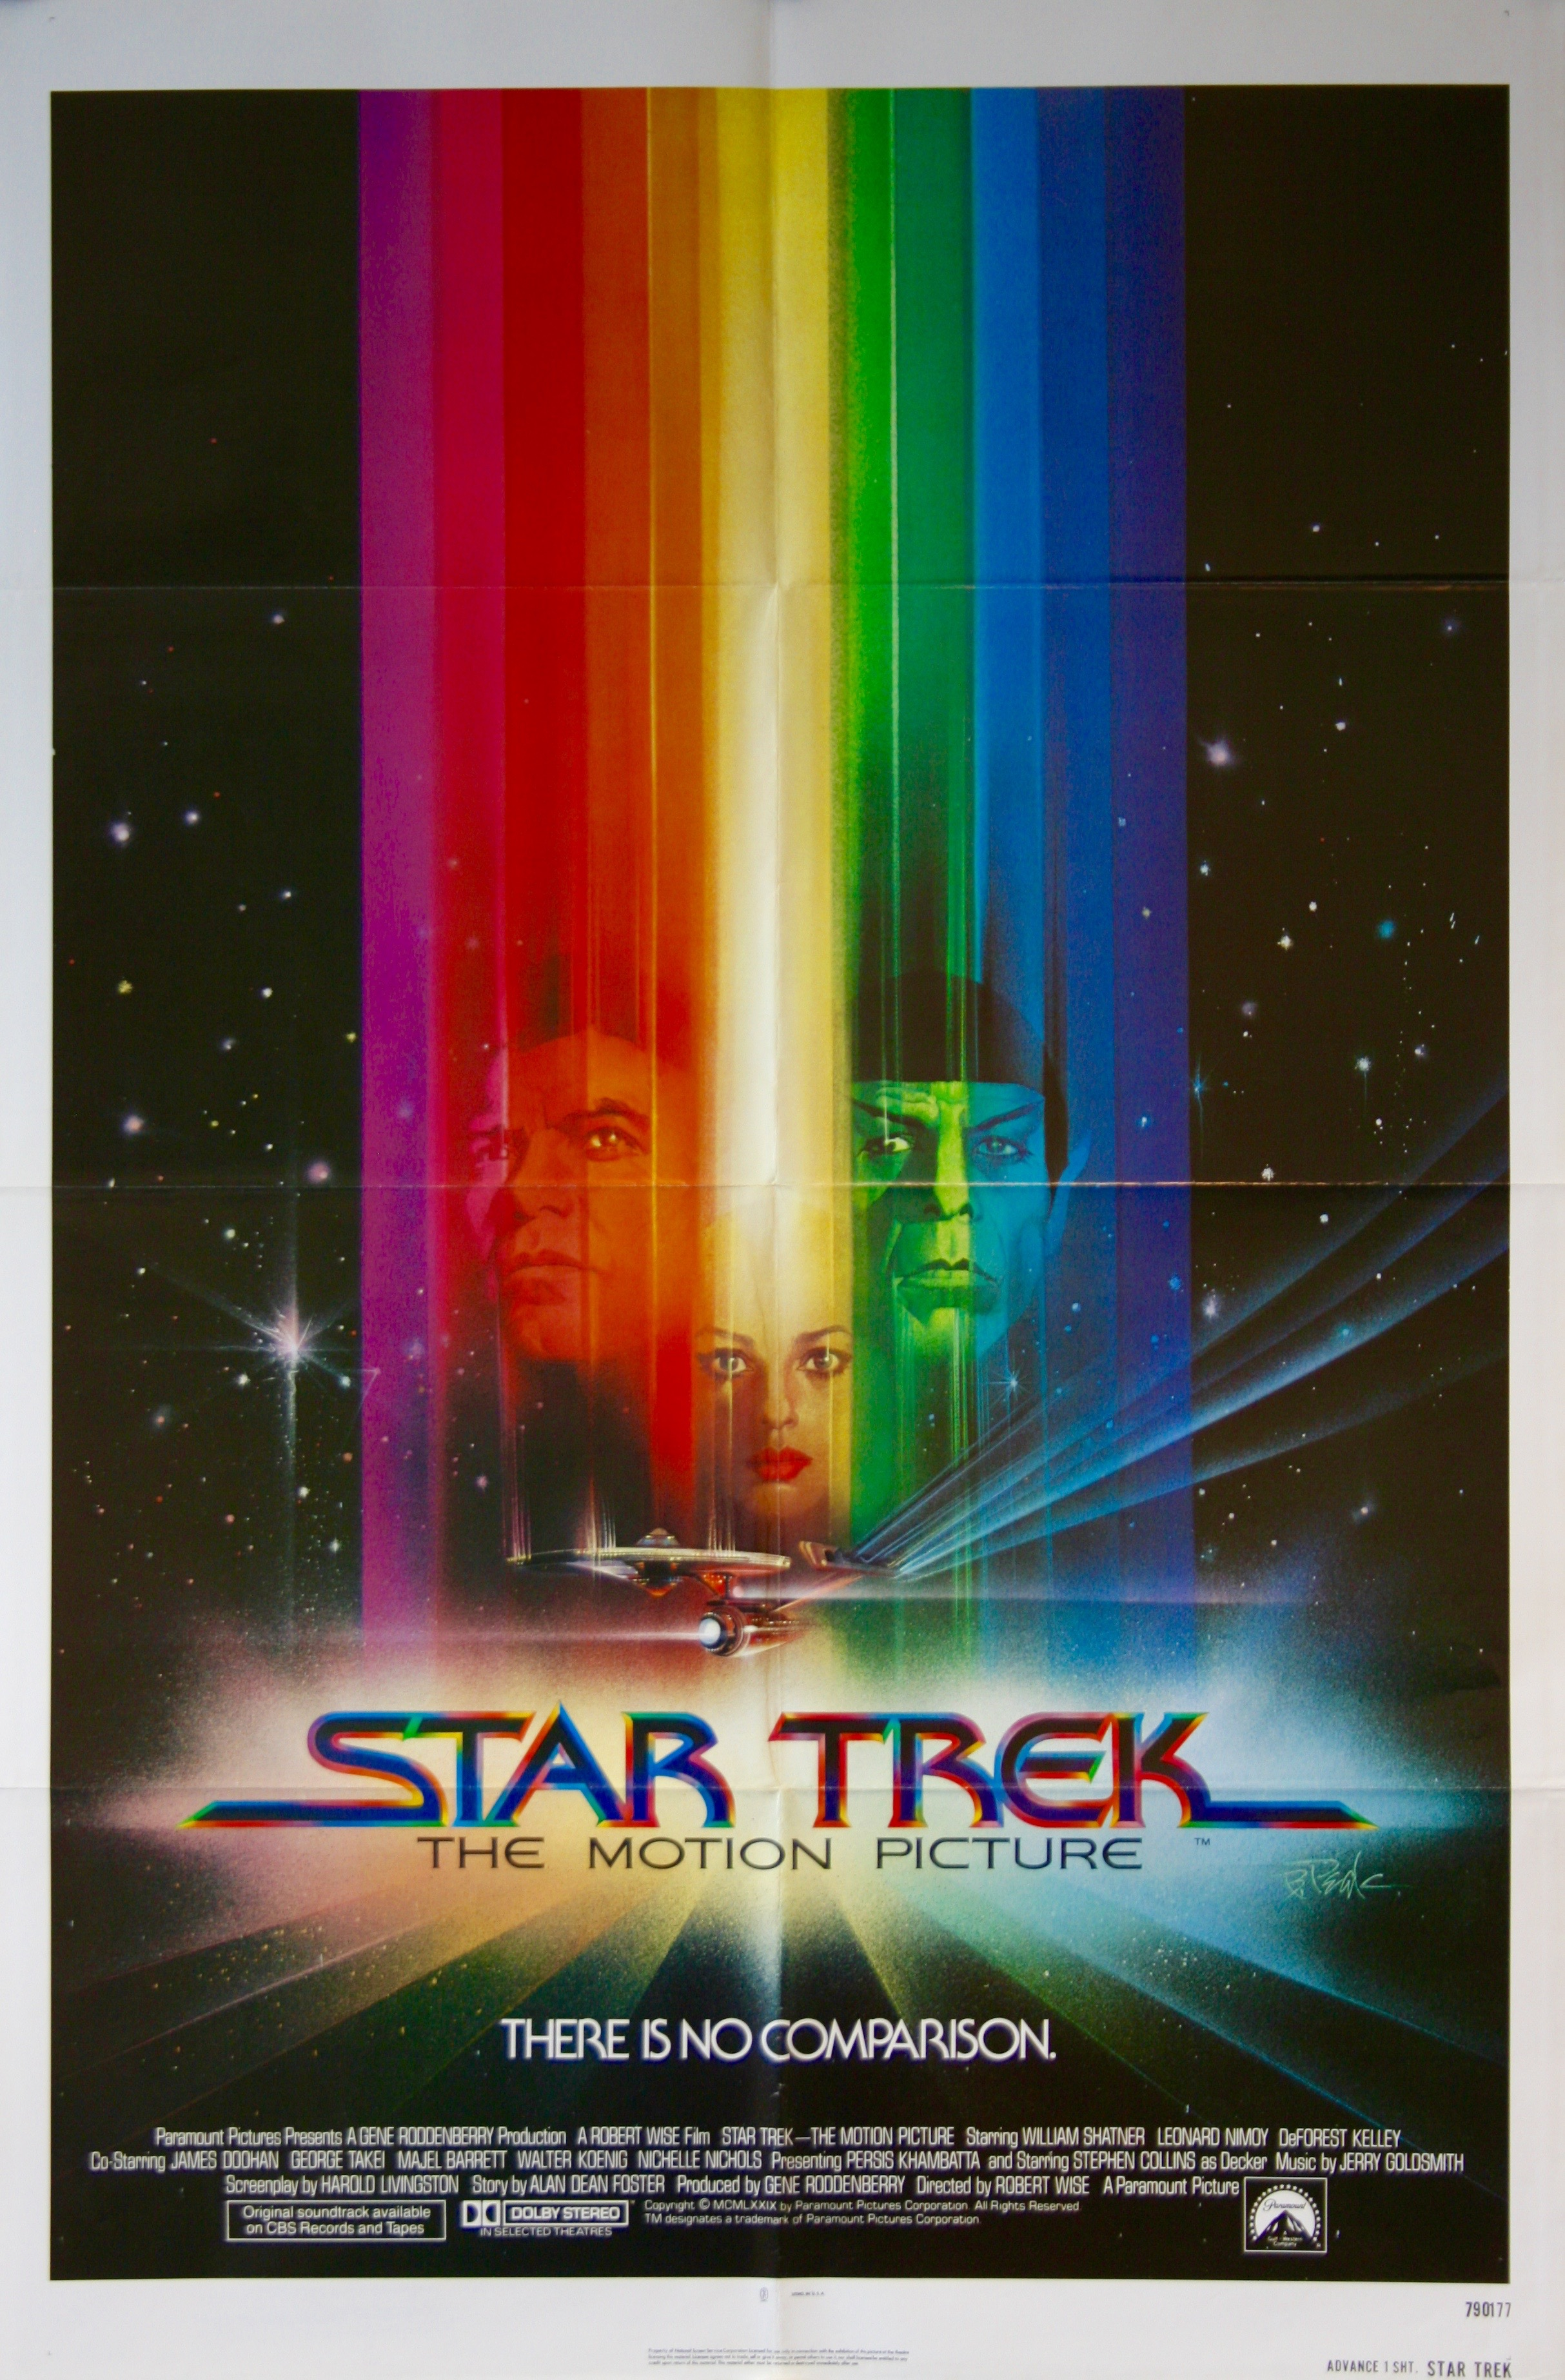 Star Trek The Motion Picture - Vintage Movie Posters